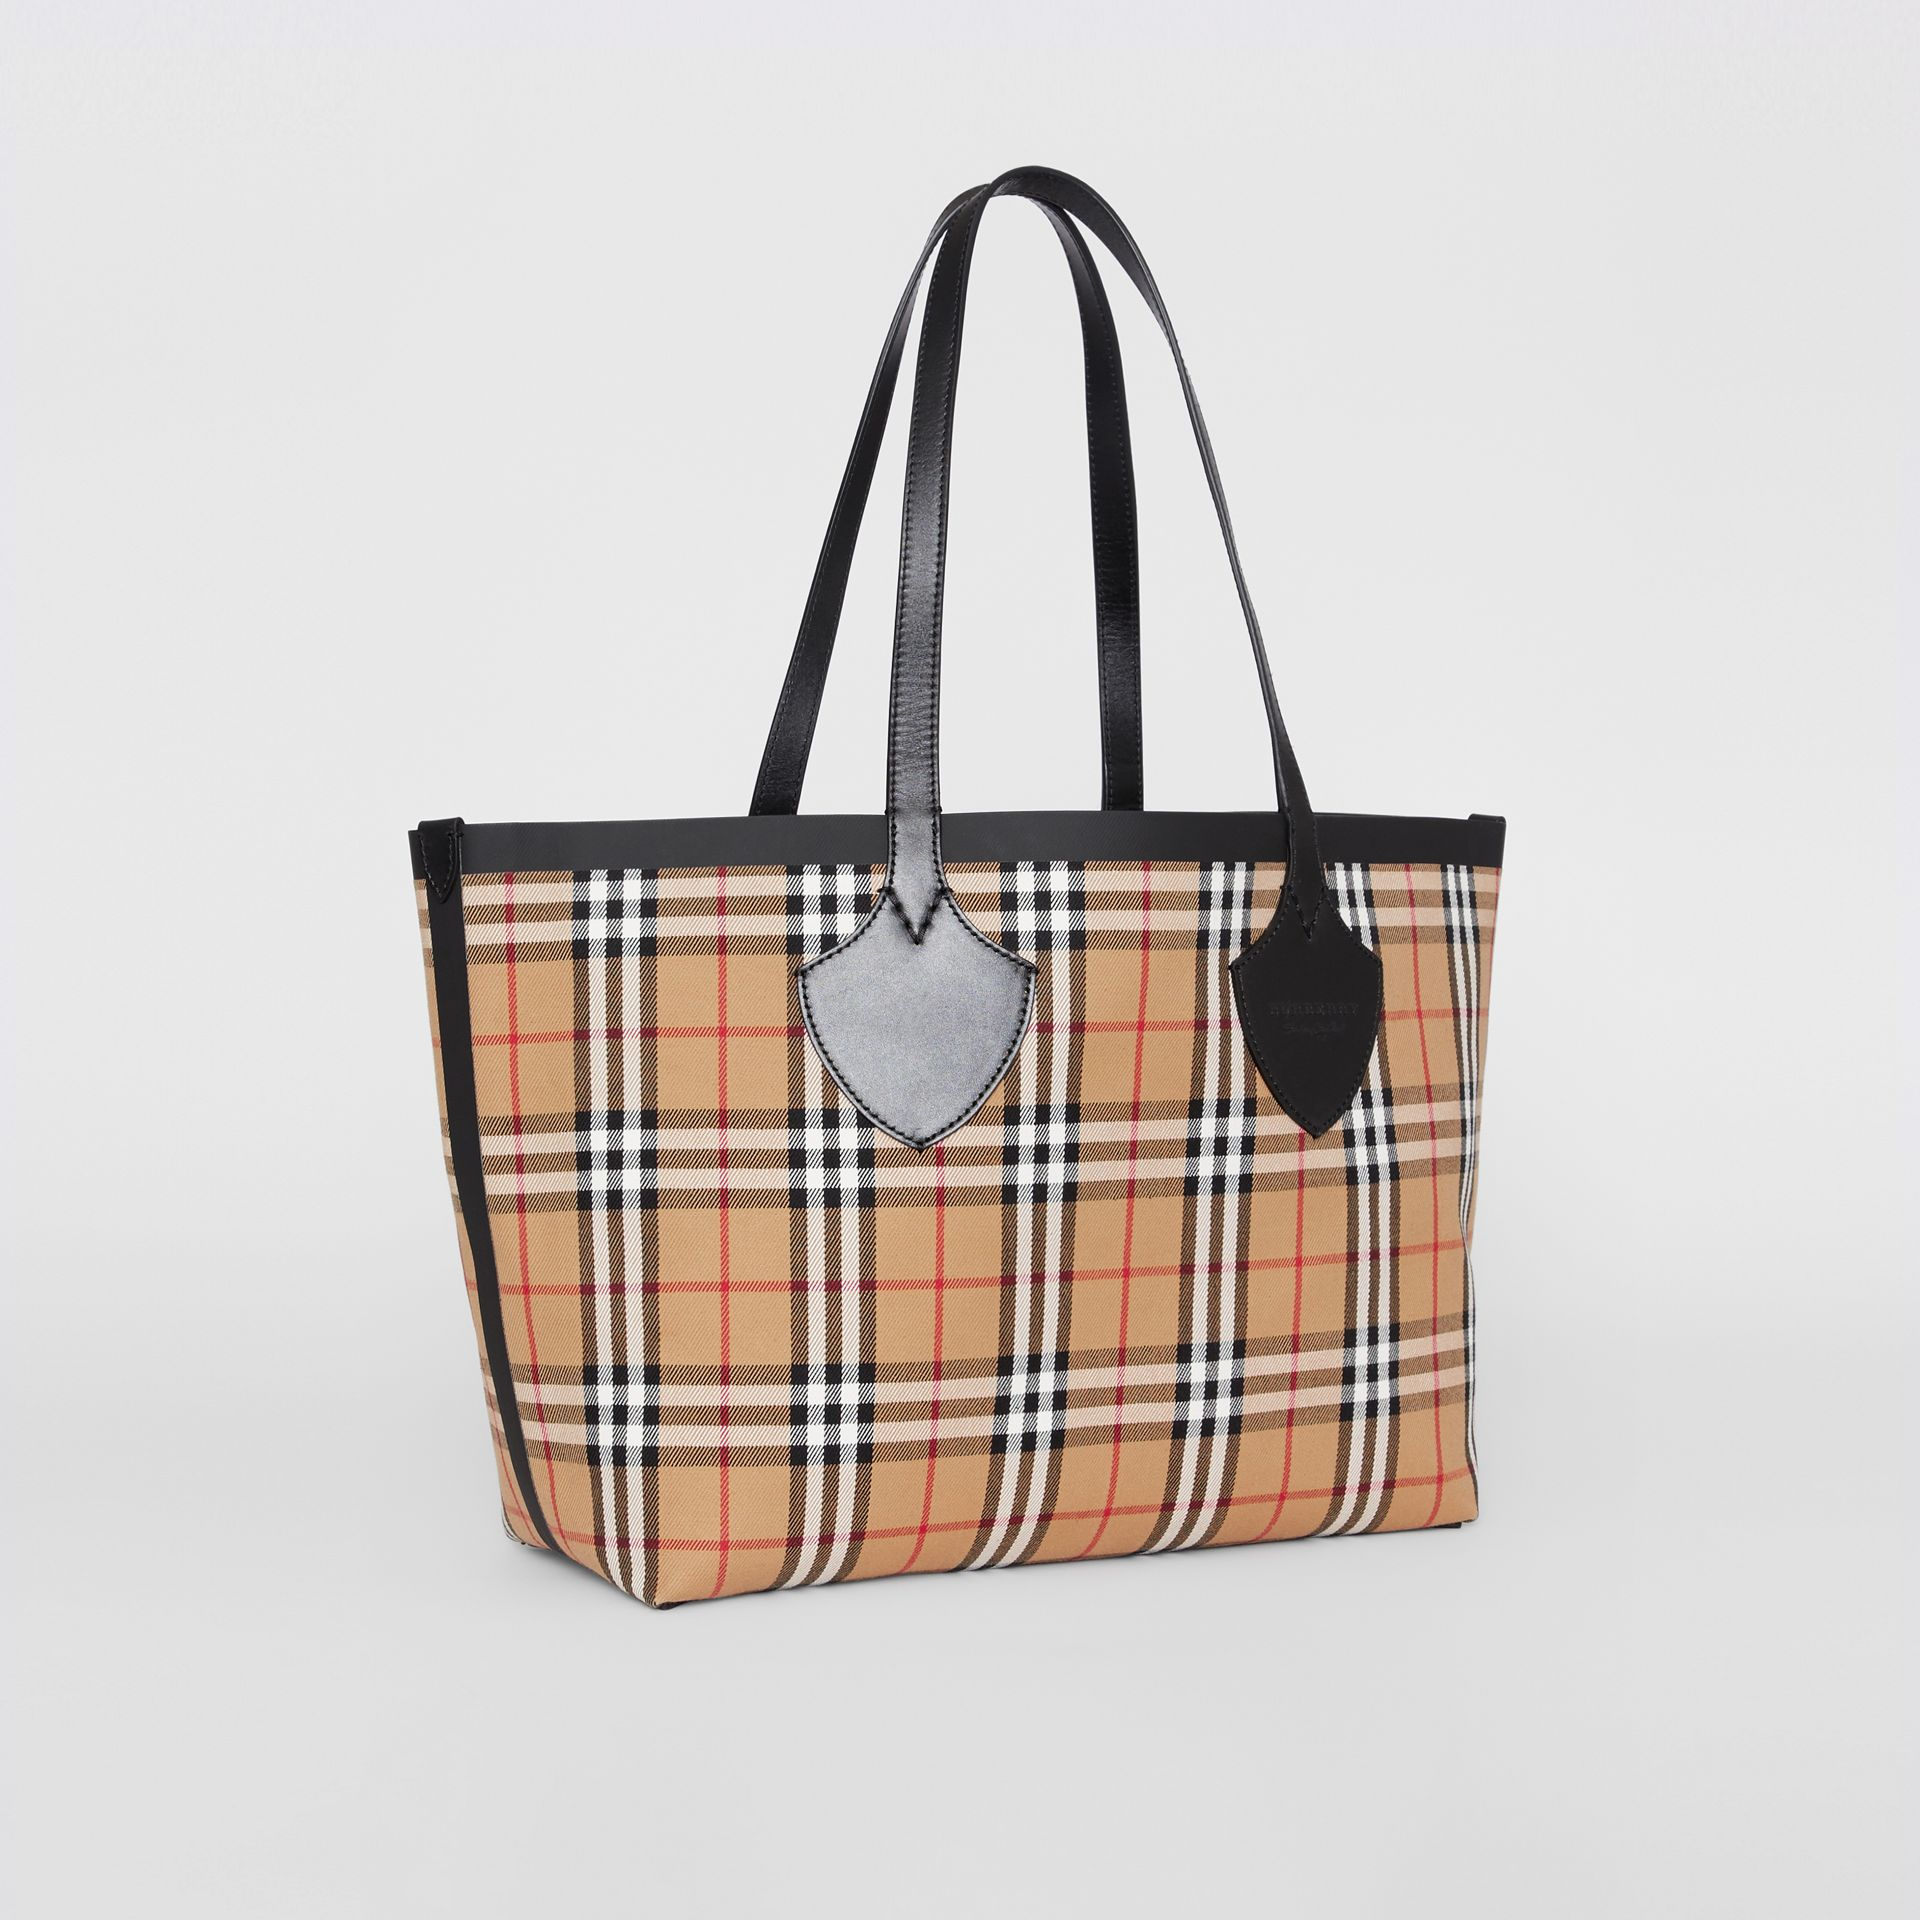 Sac tote The Giant moyen en Vintage check (Jaune Antique/rouge Vif) | Burberry Canada - photo de la galerie 7